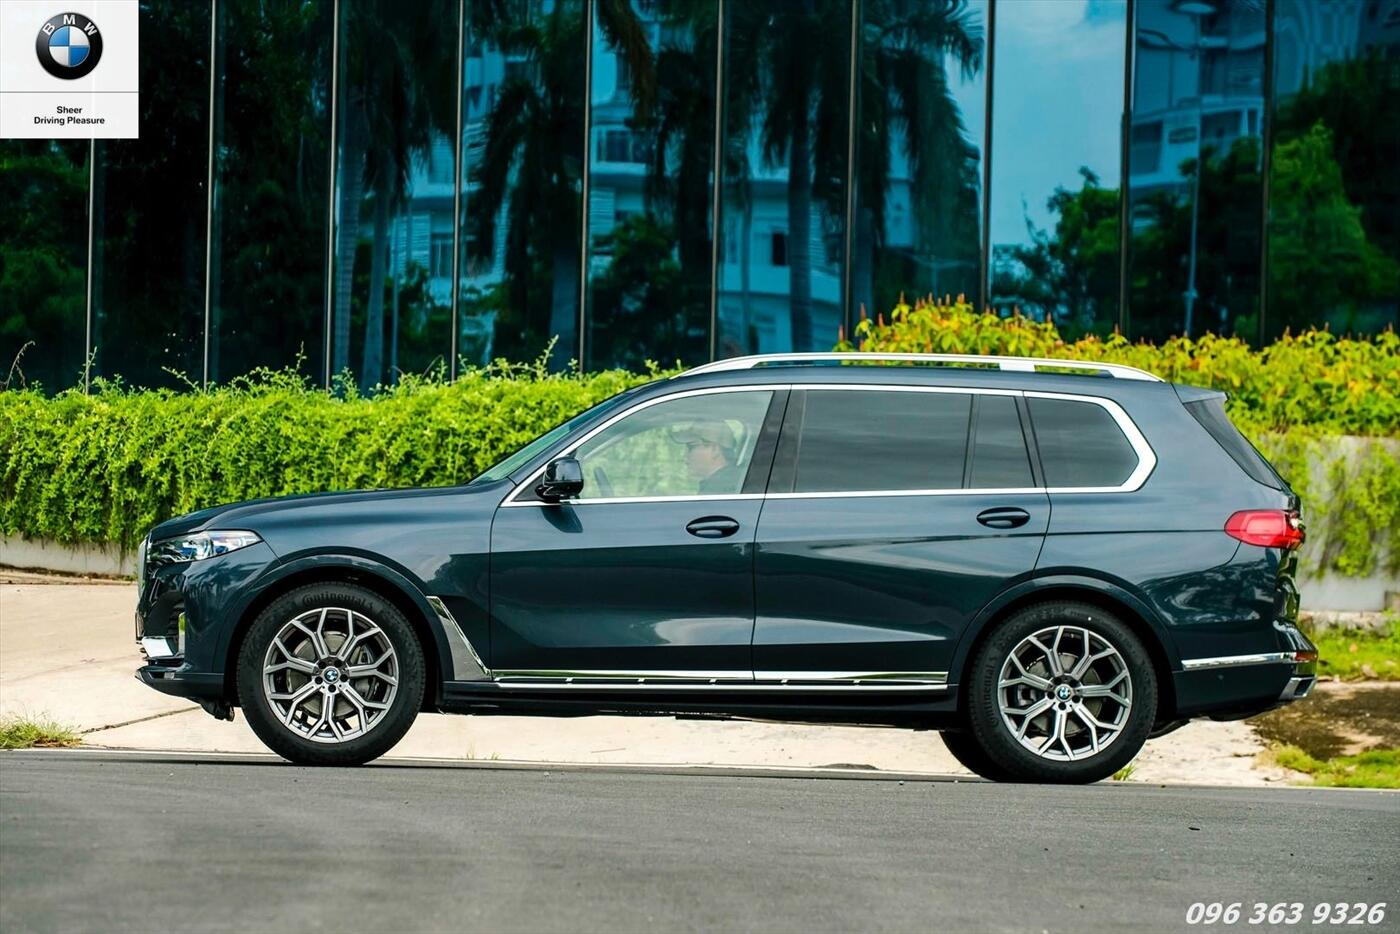 BMW X7 Pure Excellence